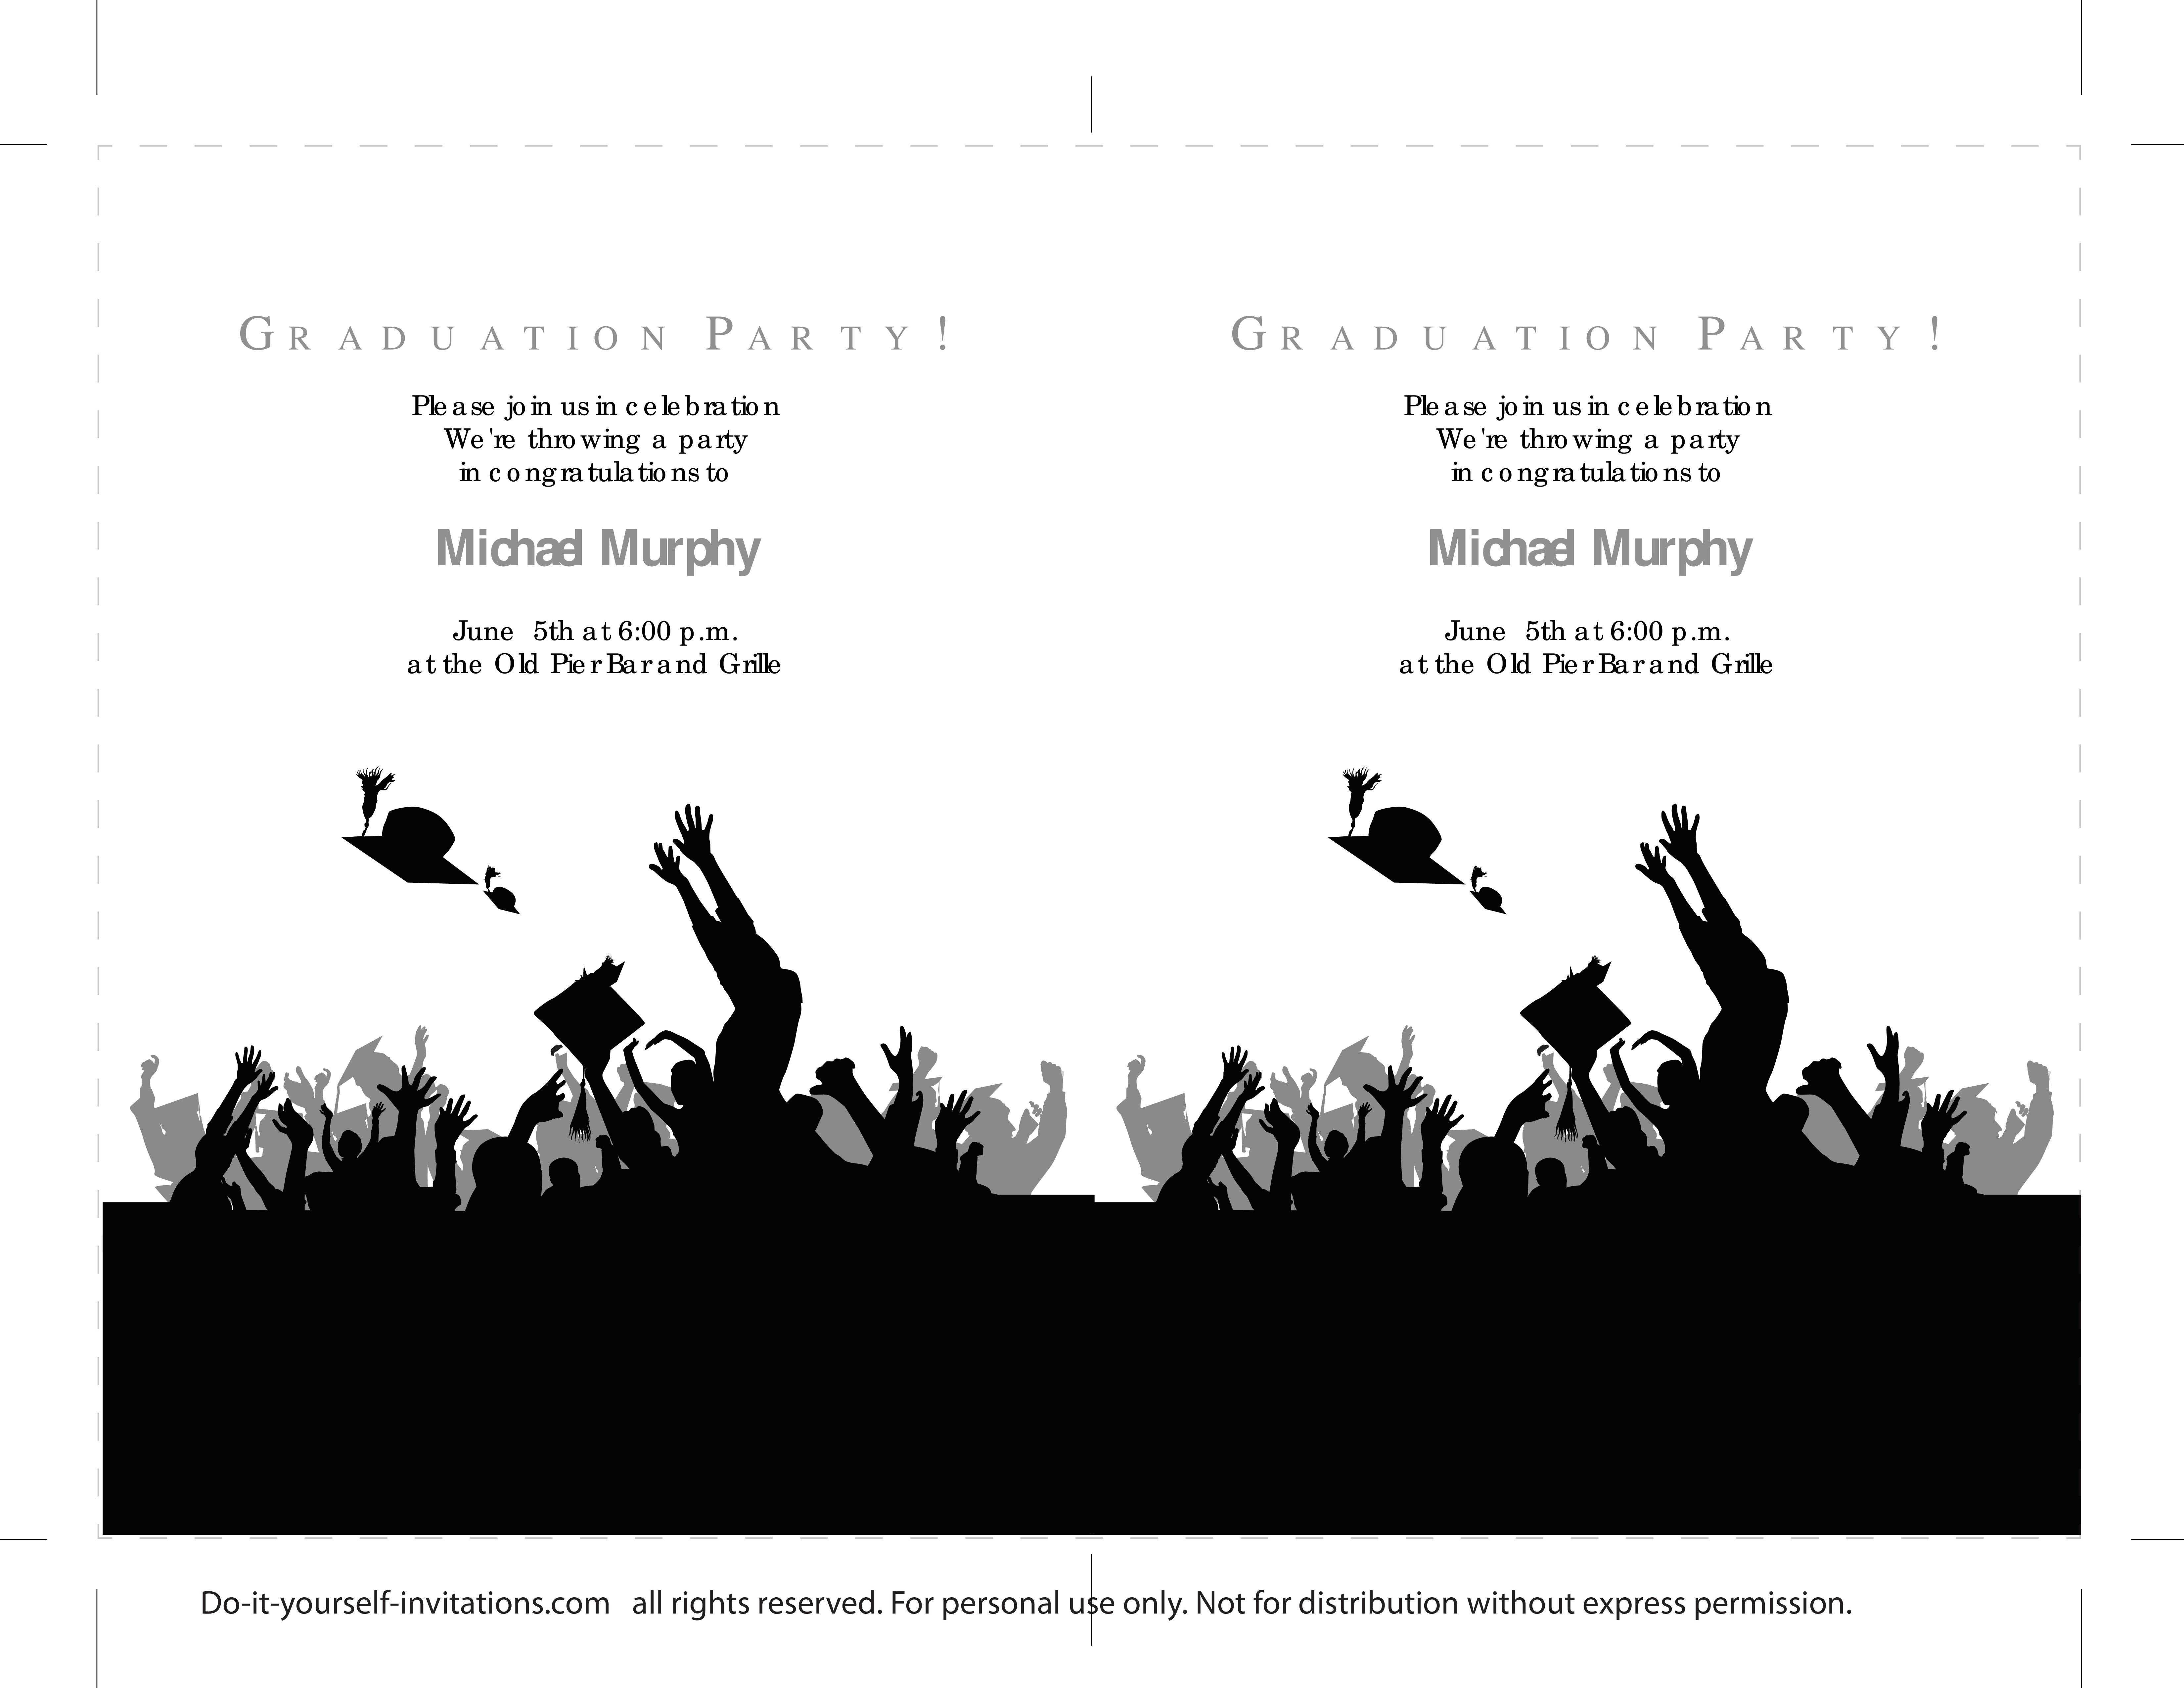 Graduation Party Invitation Template 40 Free Graduation Invitation Templates Template Lab